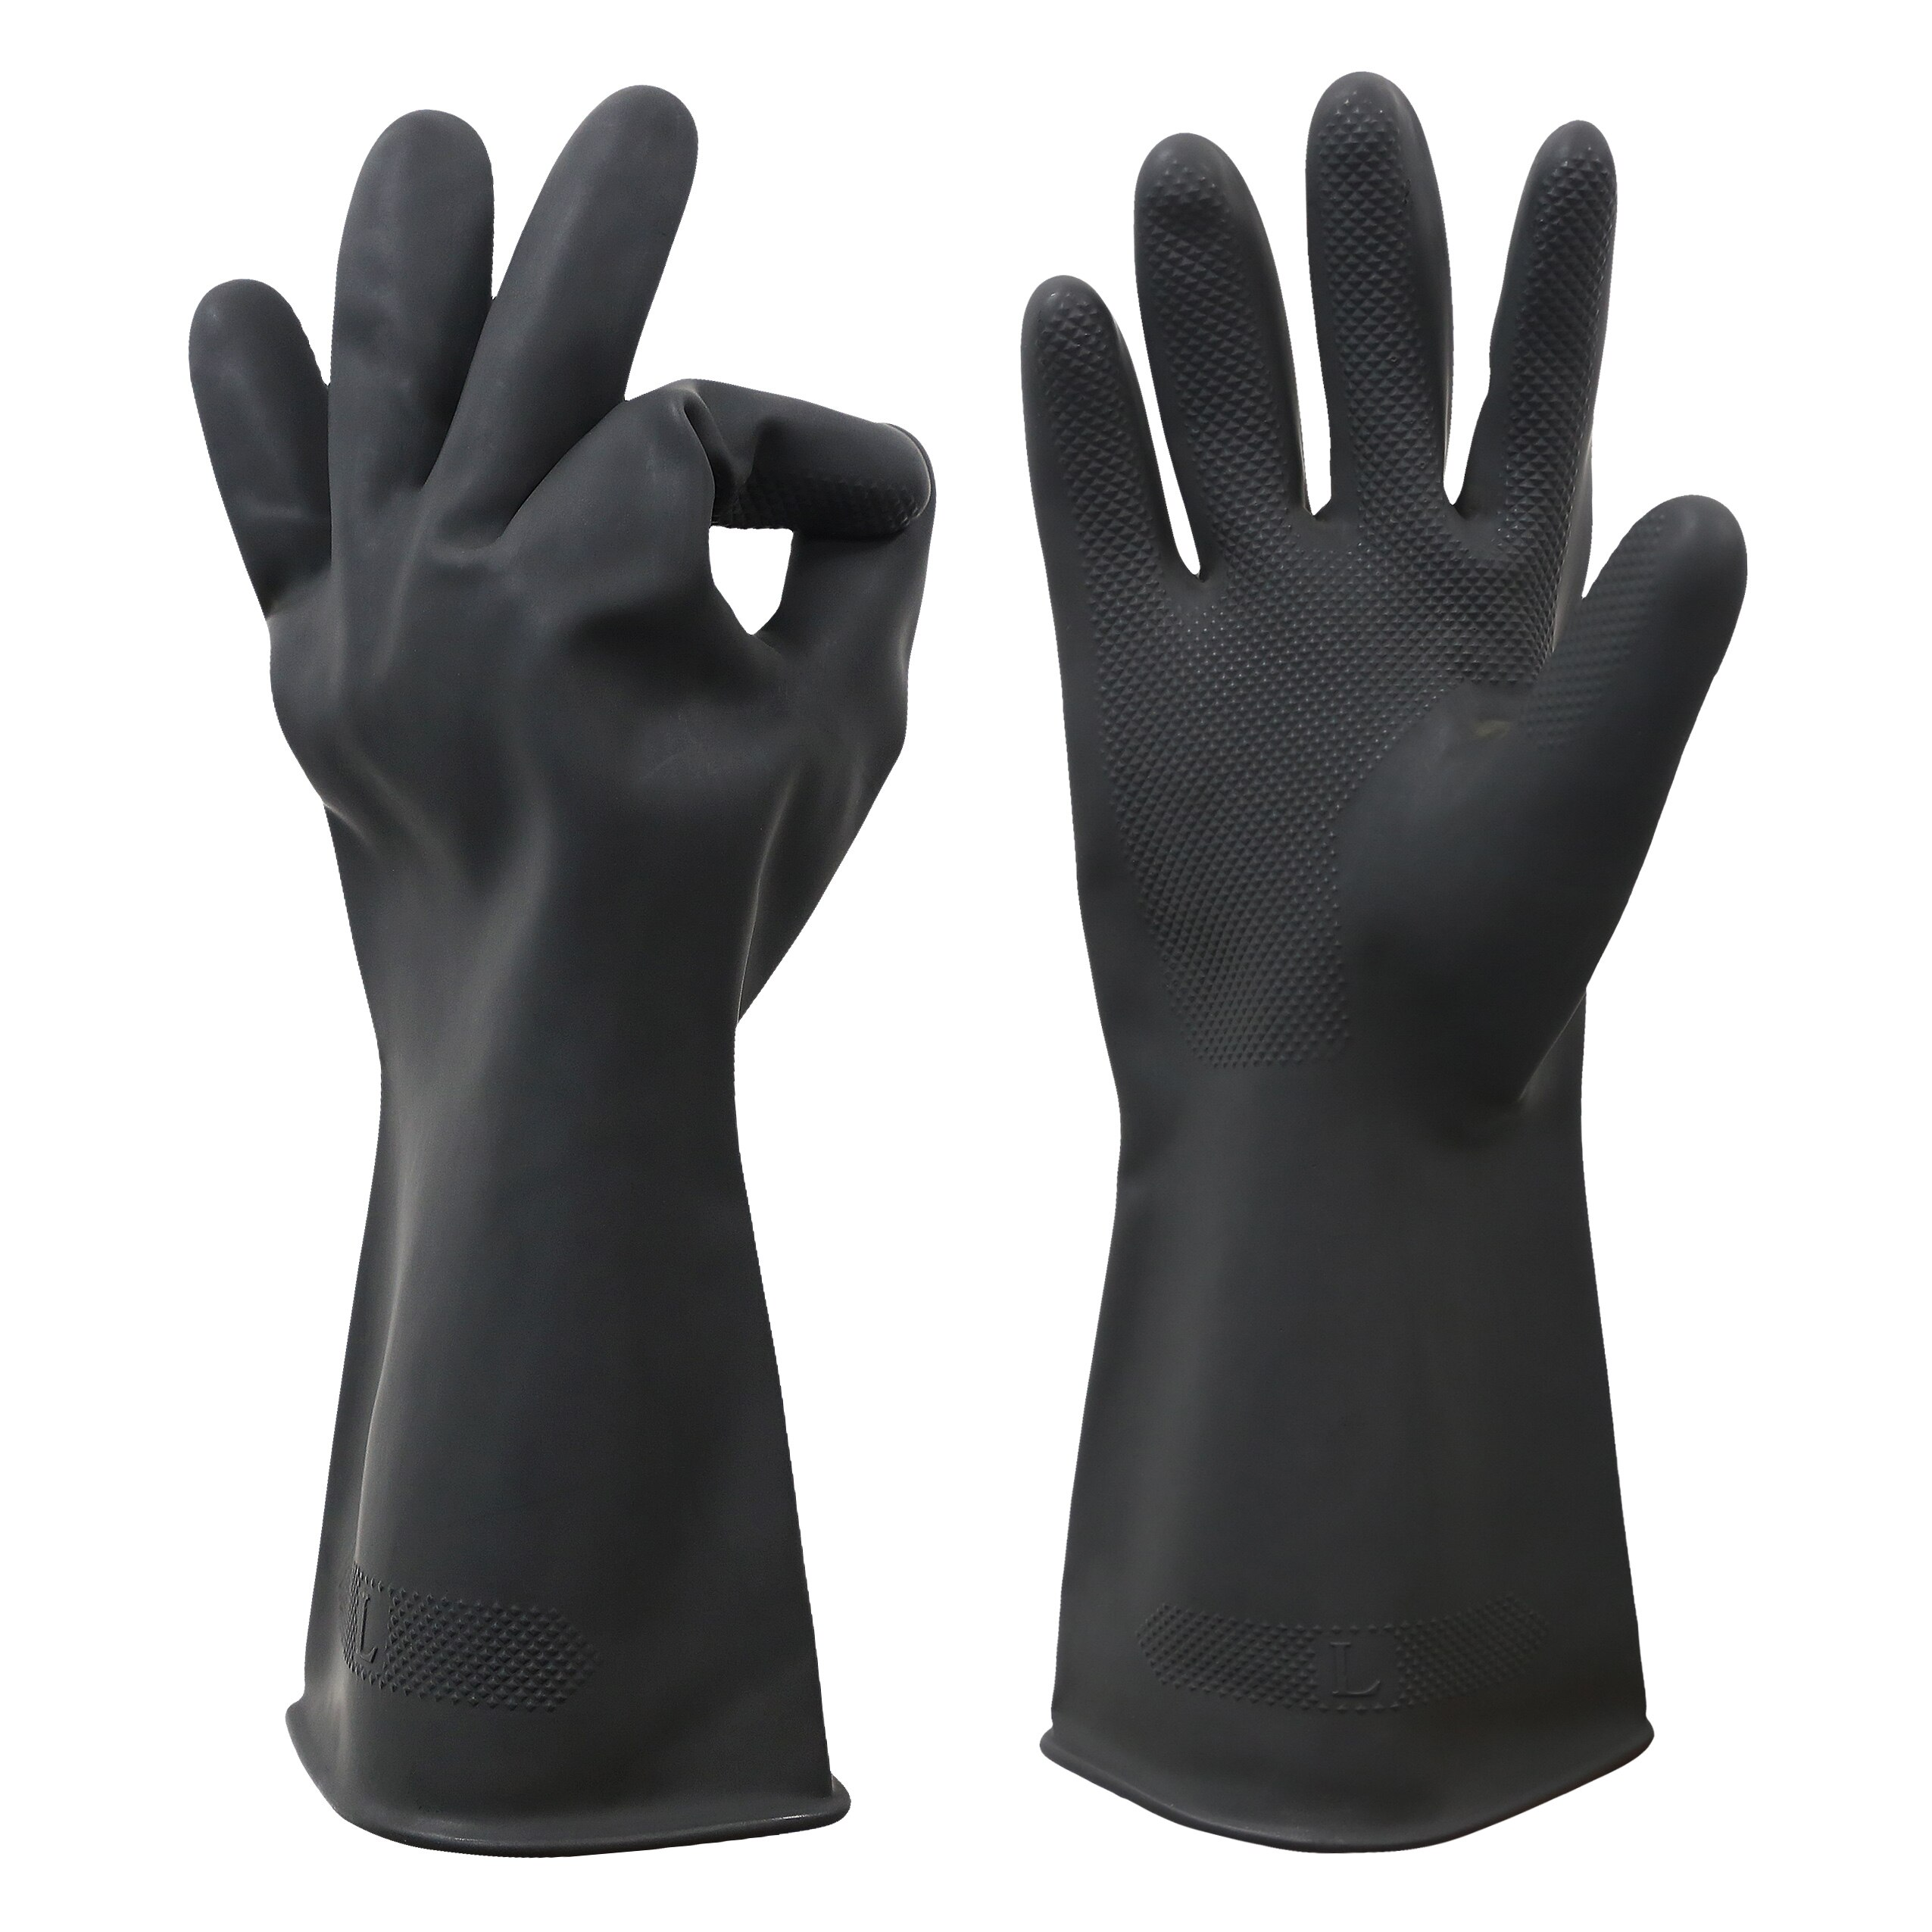 Chemical Resistant Gloves,Waterproof Reusable Dishwashing Household Cleaning Protective Safety Work Heavy Duty Industrial Rubber недорого